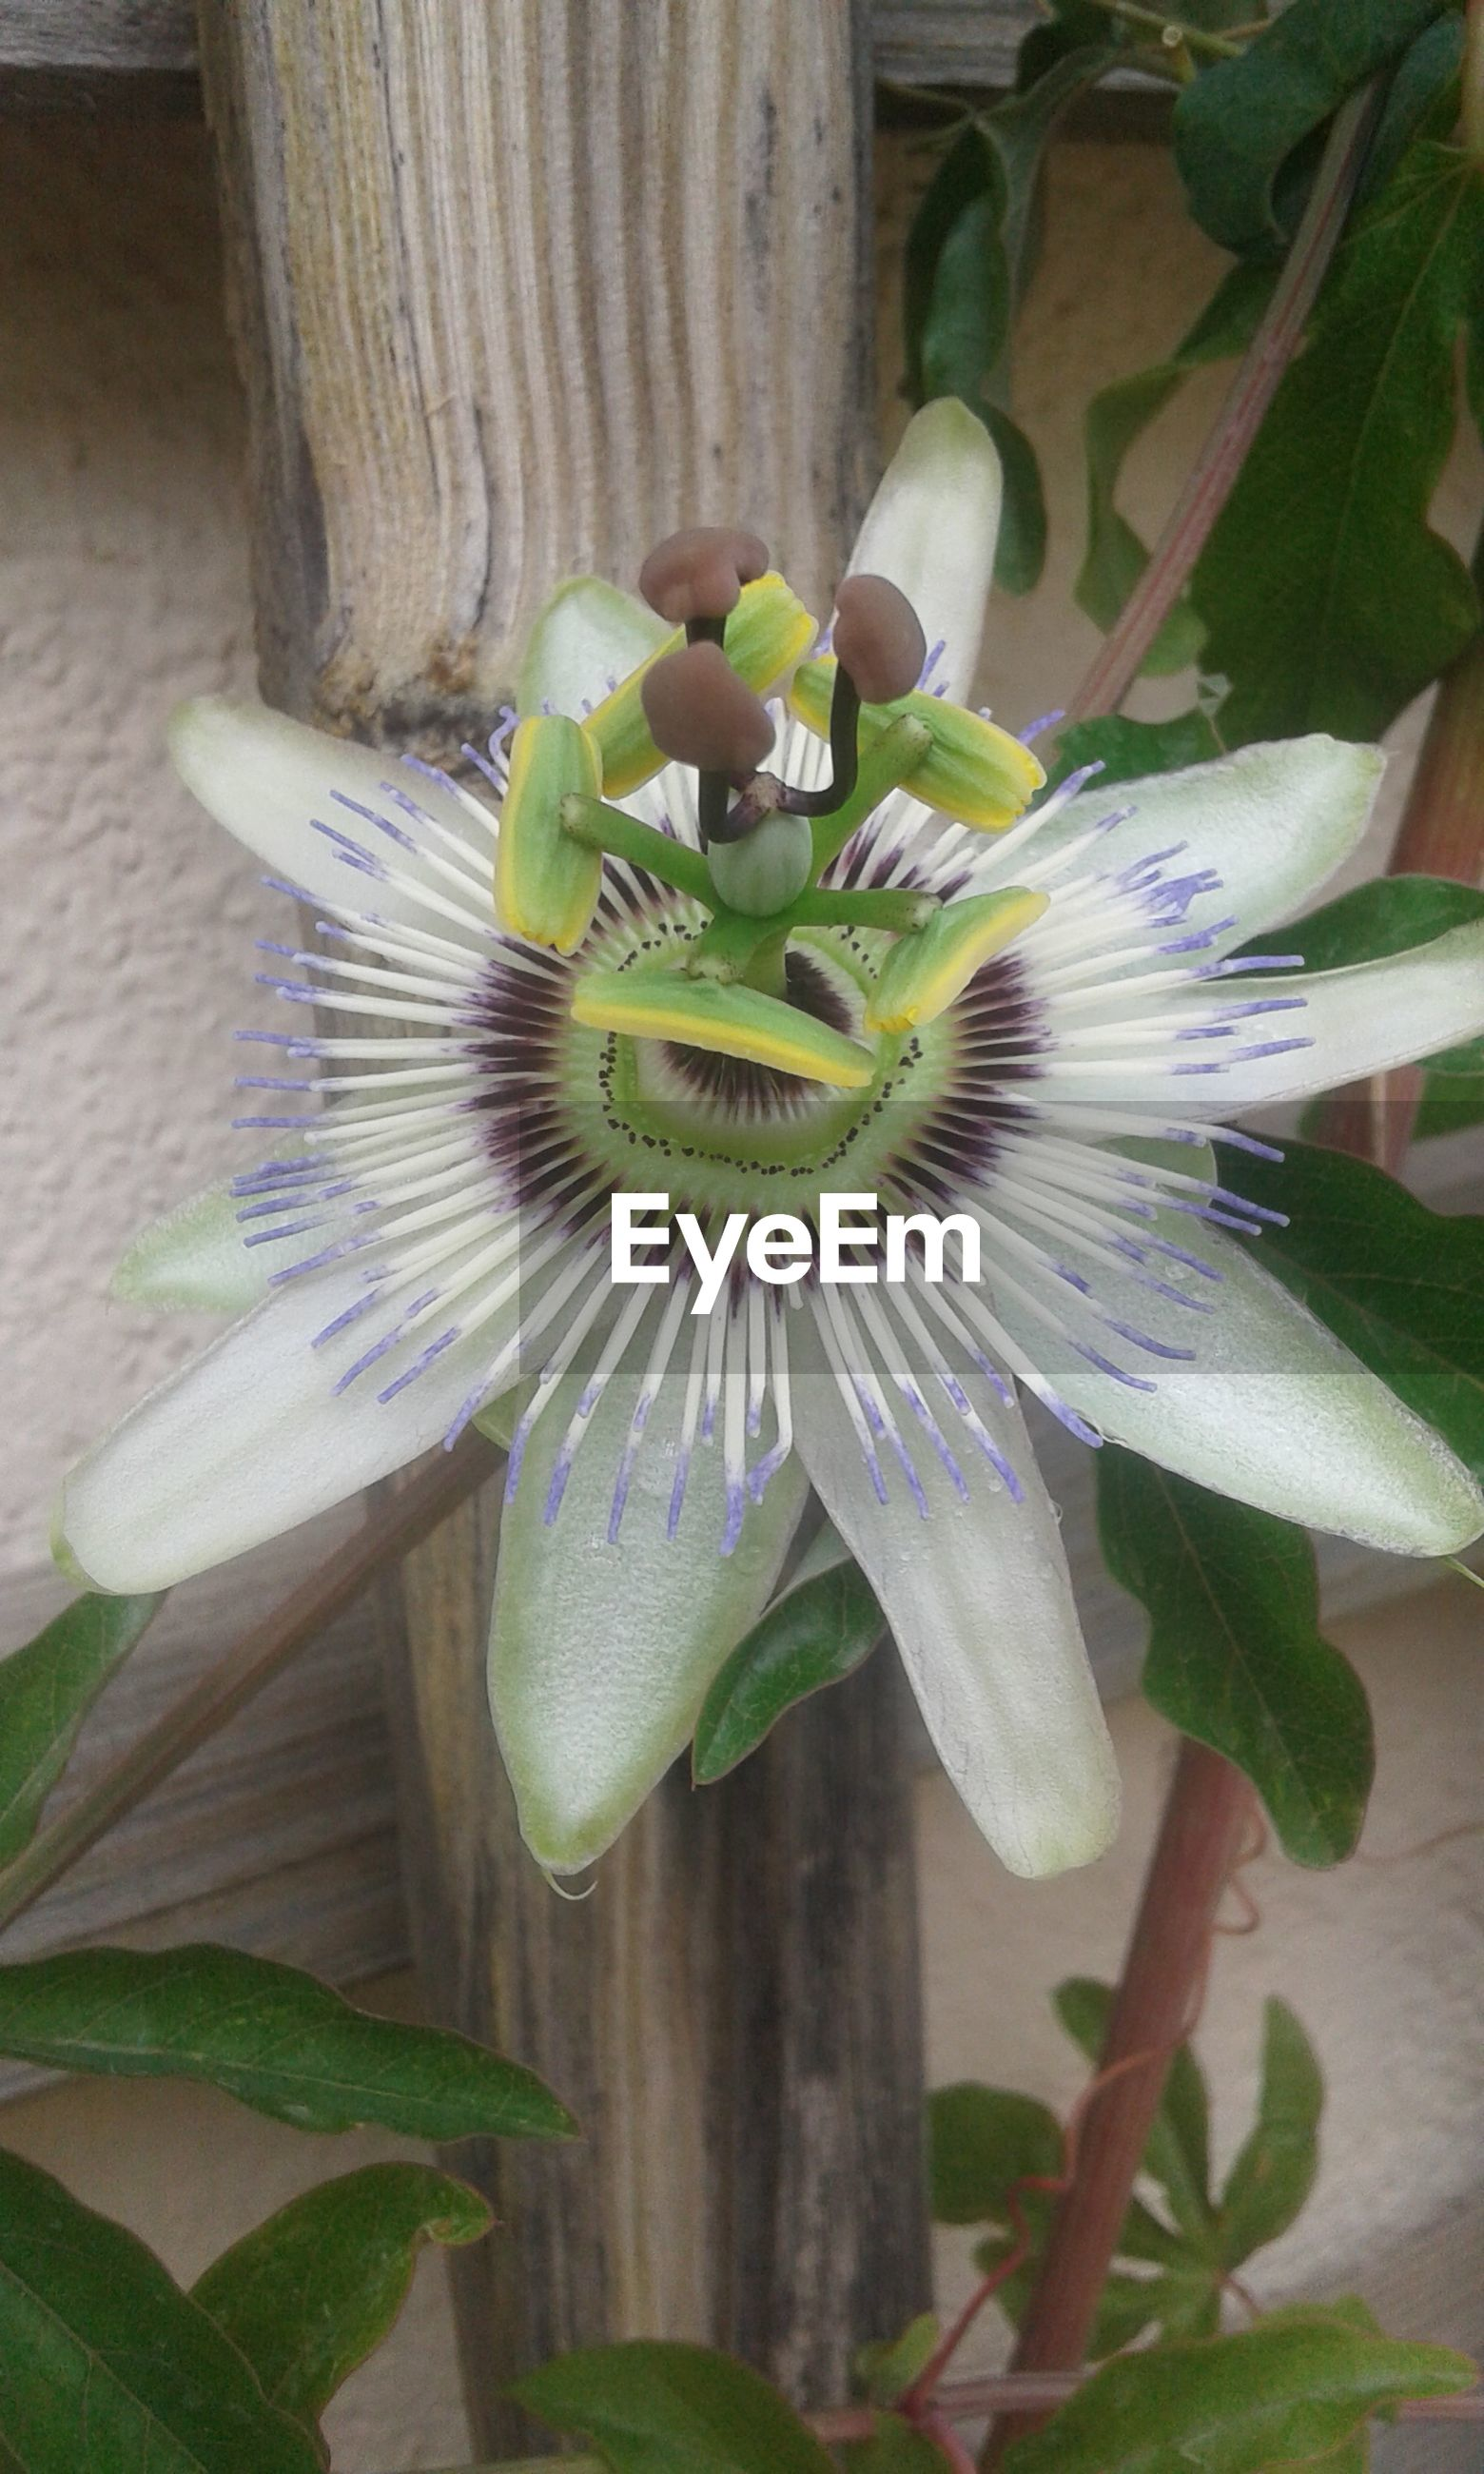 flower, freshness, growth, petal, flower head, leaf, fragility, beauty in nature, plant, green color, close-up, purple, nature, blooming, no people, day, in bloom, stem, pollen, outdoors, botany, focus on foreground, green, blue, blossom, stamen, growing